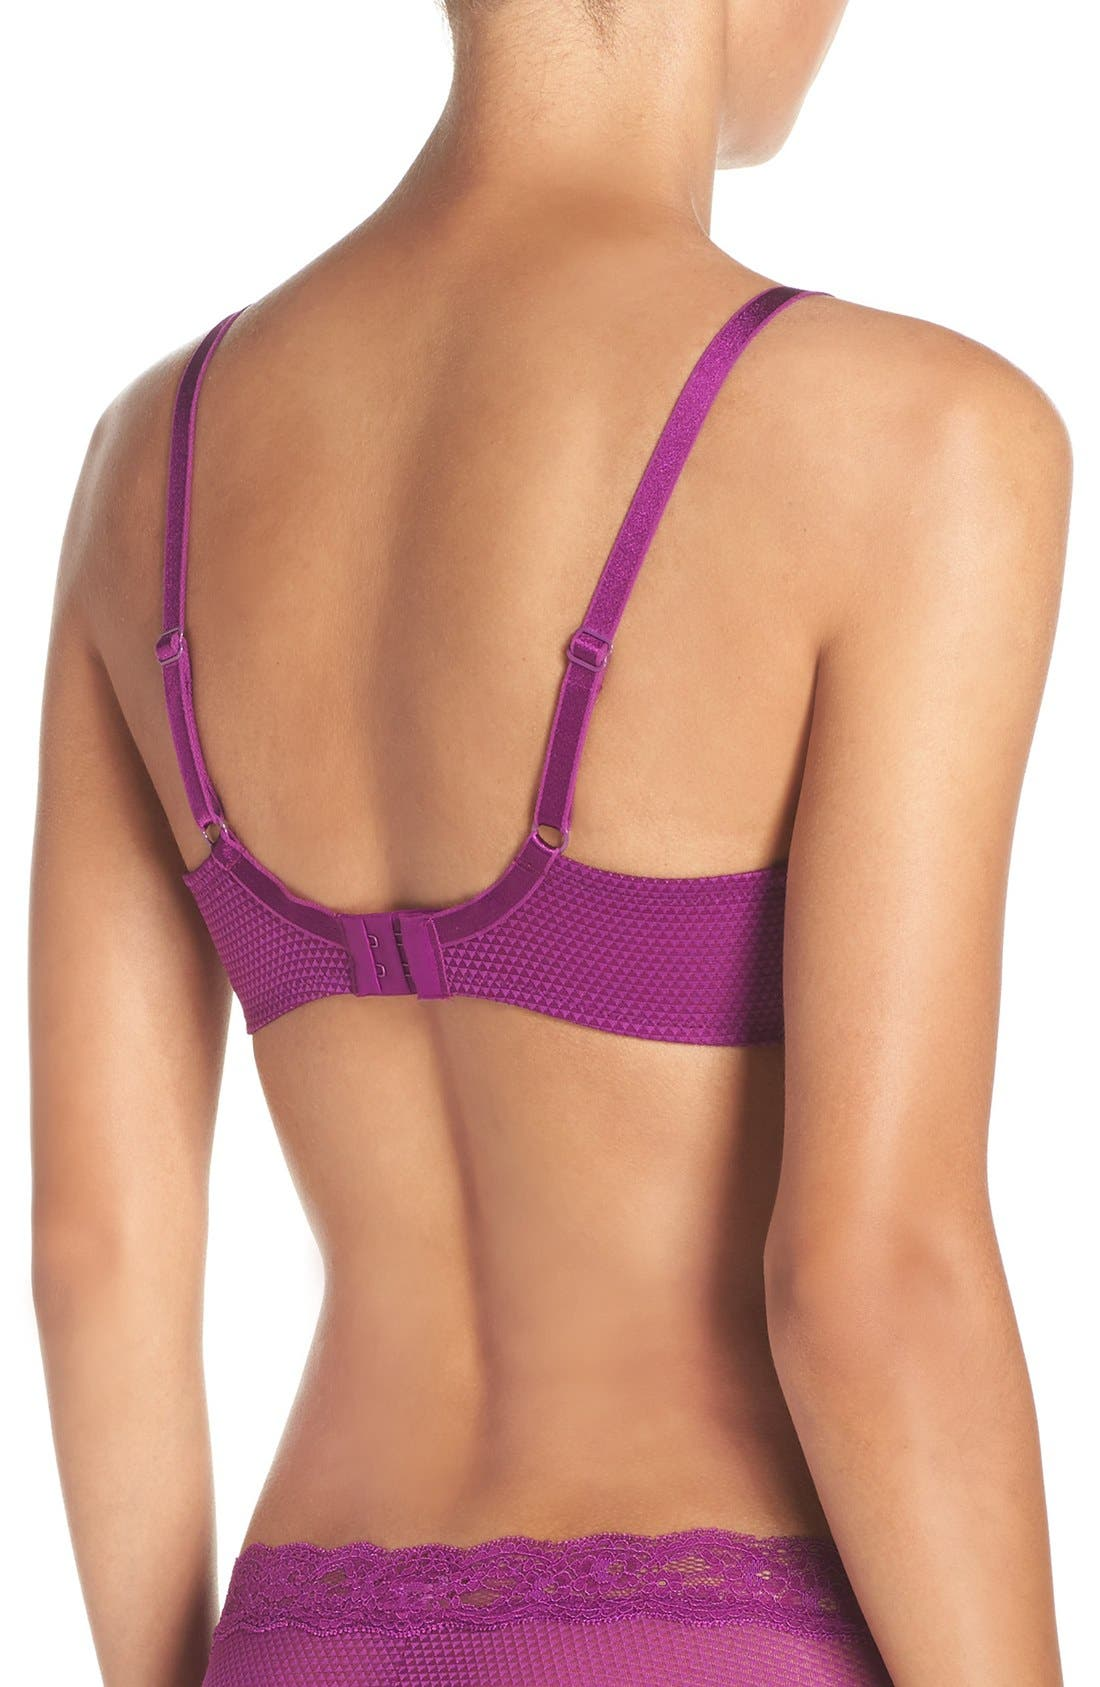 'Brooklyn' Underwire T-Shirt Bra,                             Alternate thumbnail 23, color,